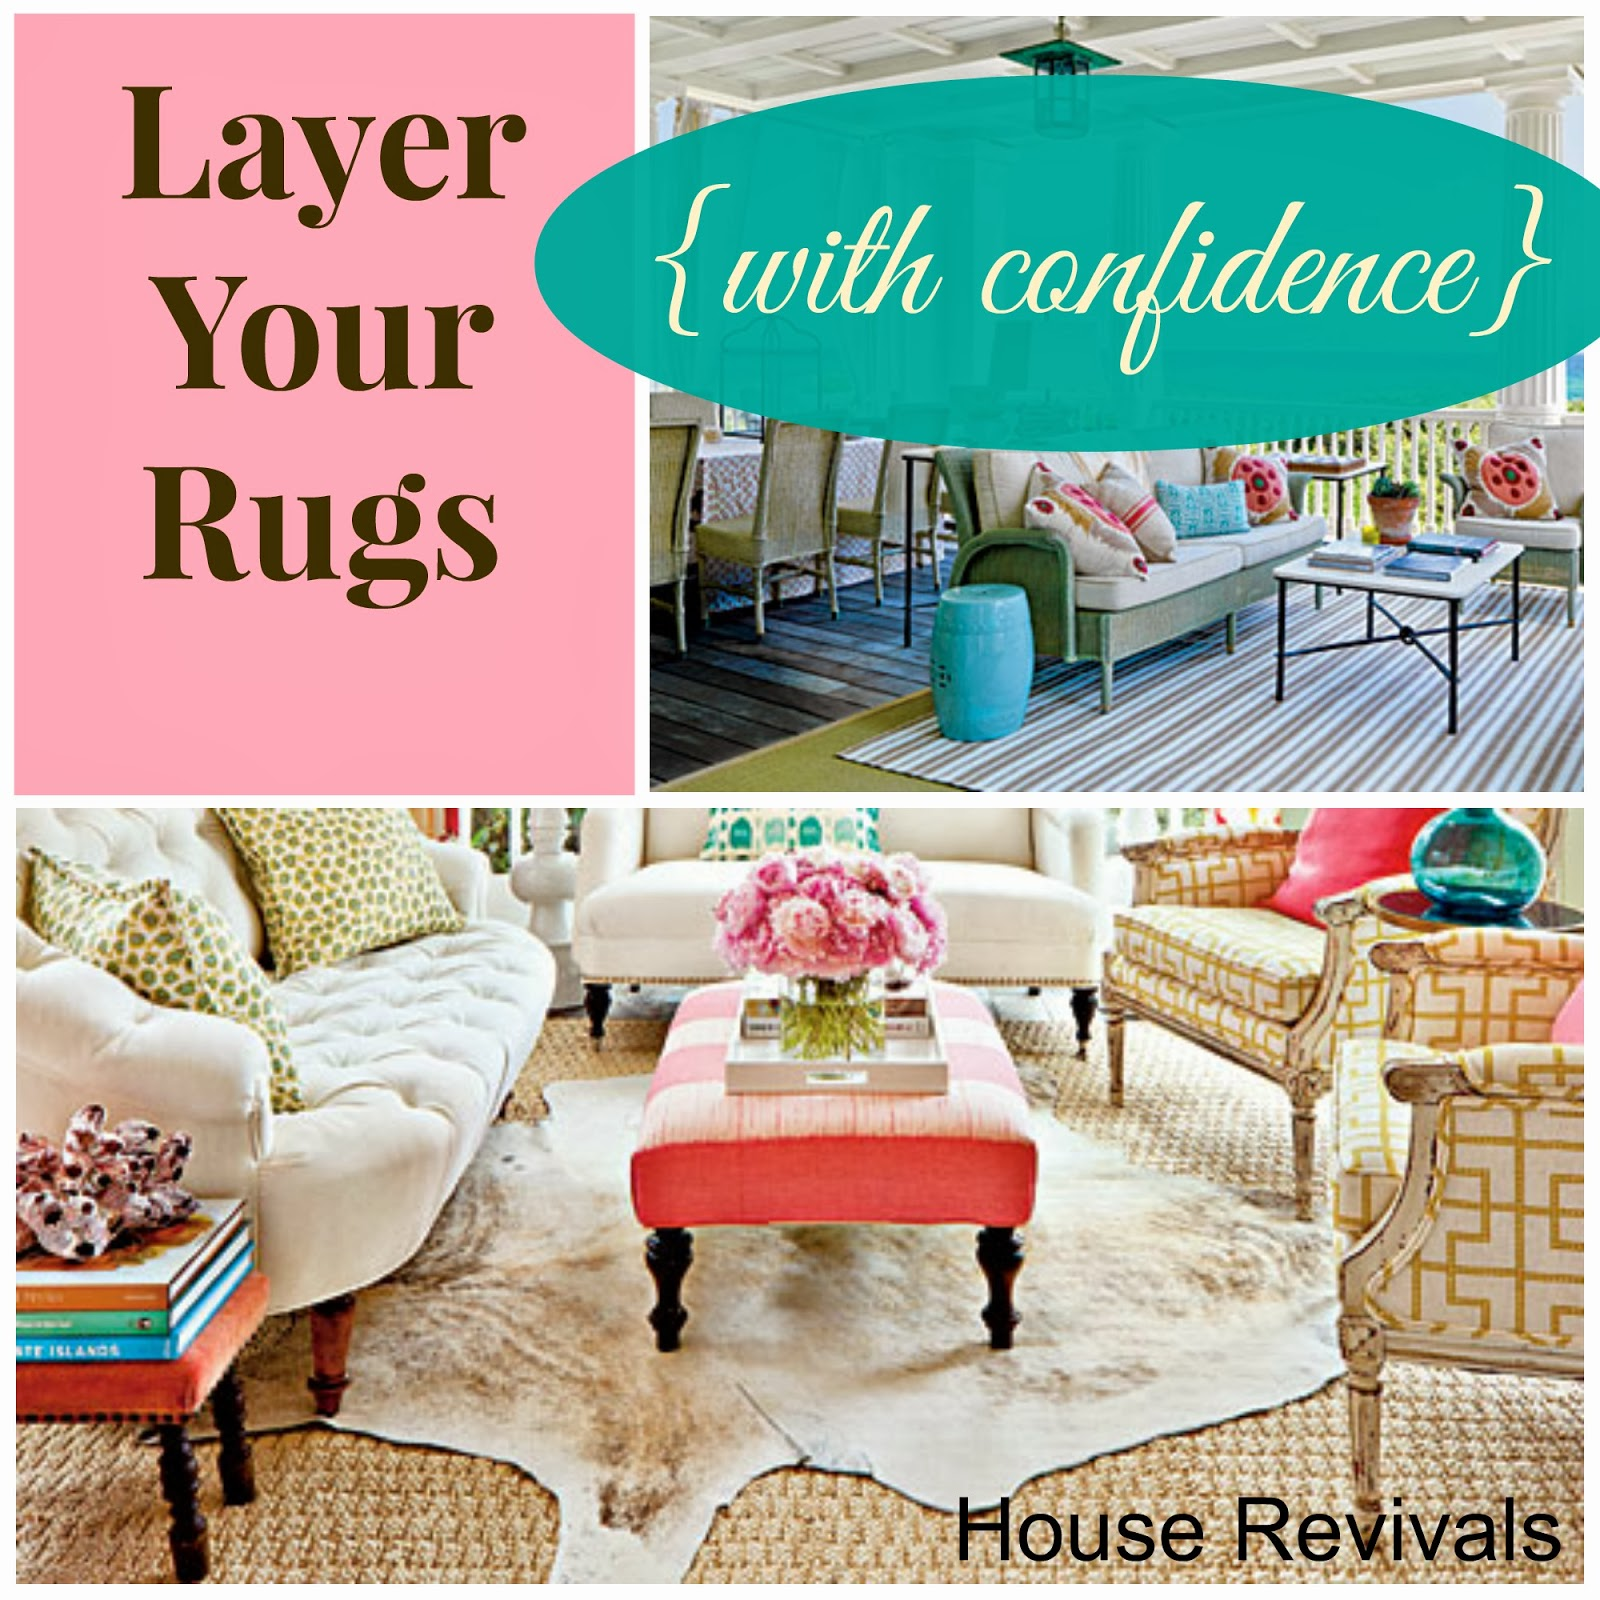 Rugs Are Definitely Workhorses! Lately, Iu0027ve Been Thinking Quite A Bit  About Layering Rugs ...